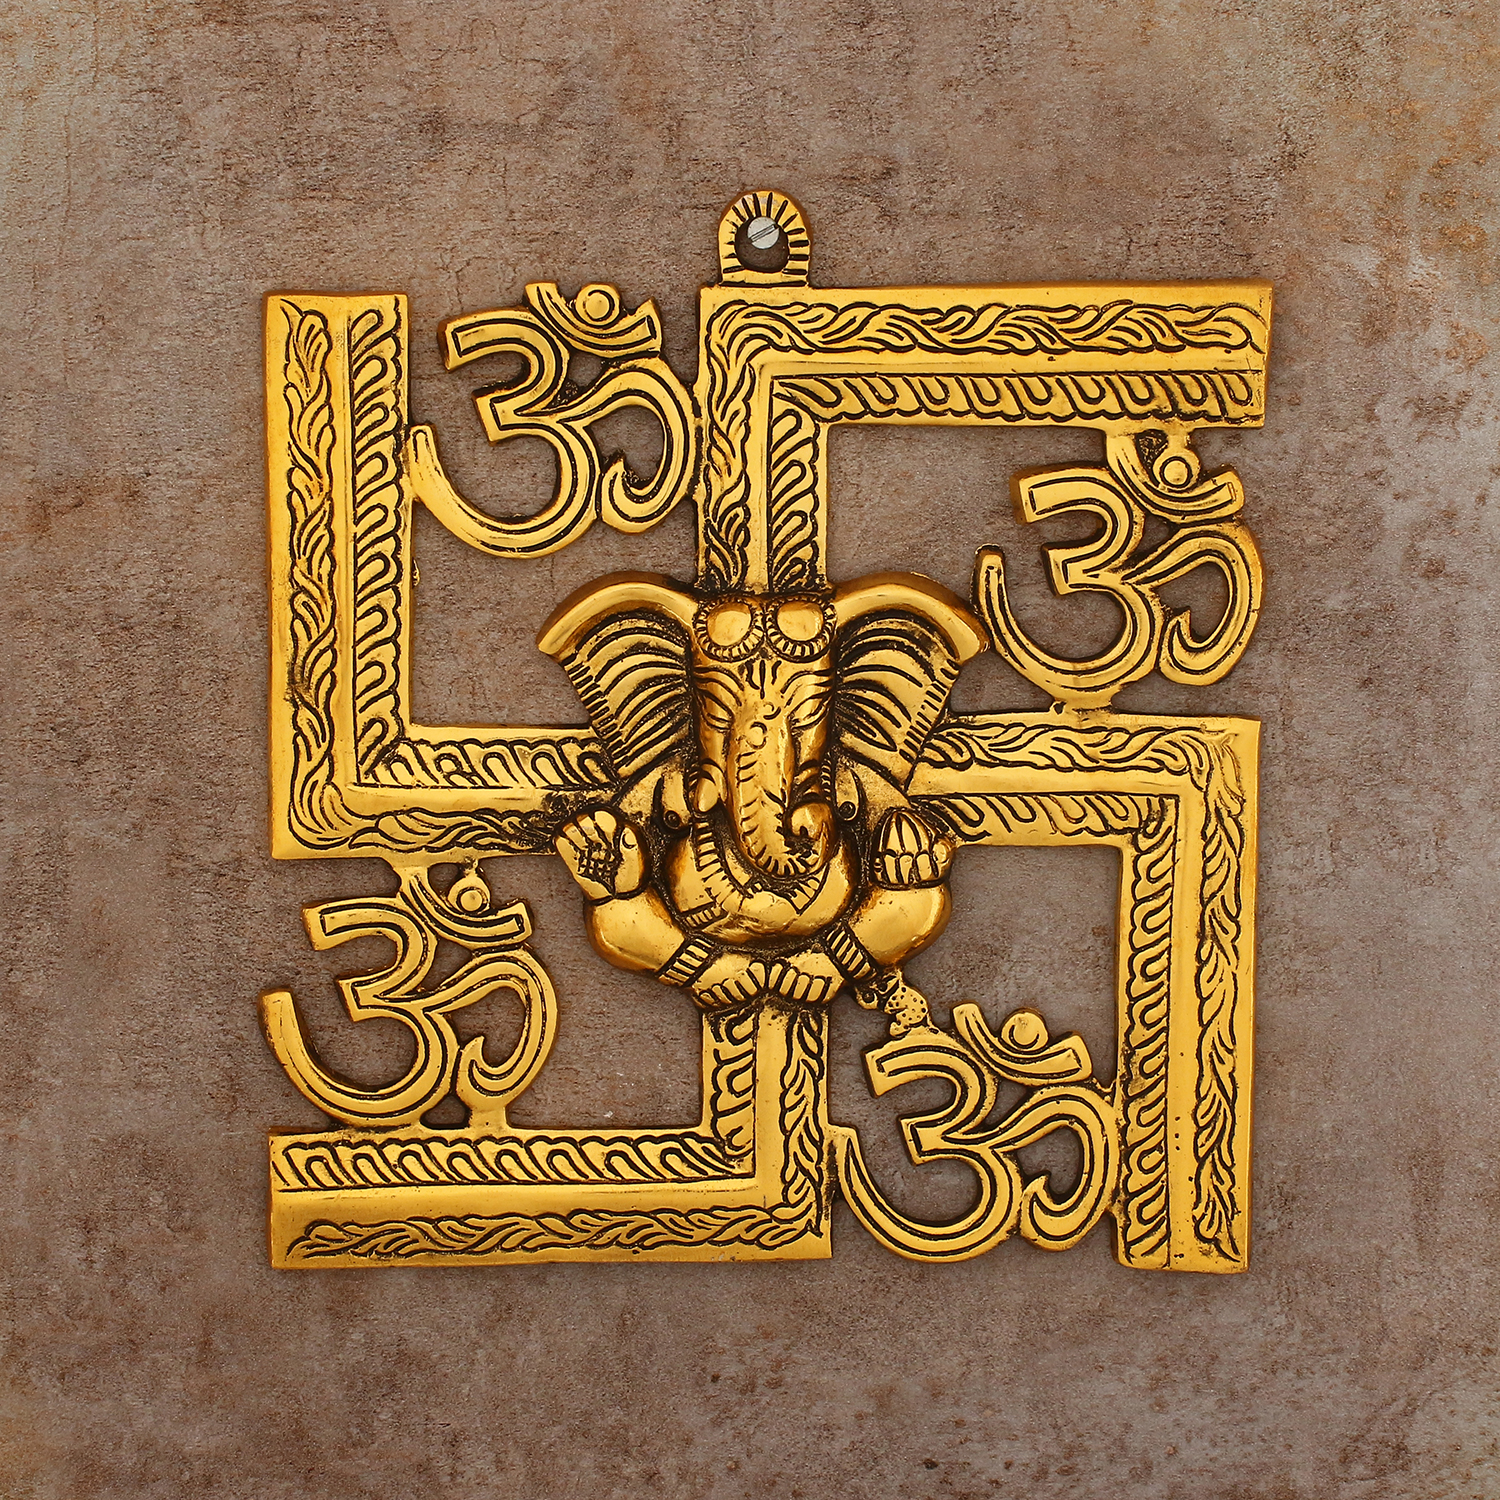 Lord Ganesha on Om Swastik Metal Golden Wall Hanging Indian Home Decor